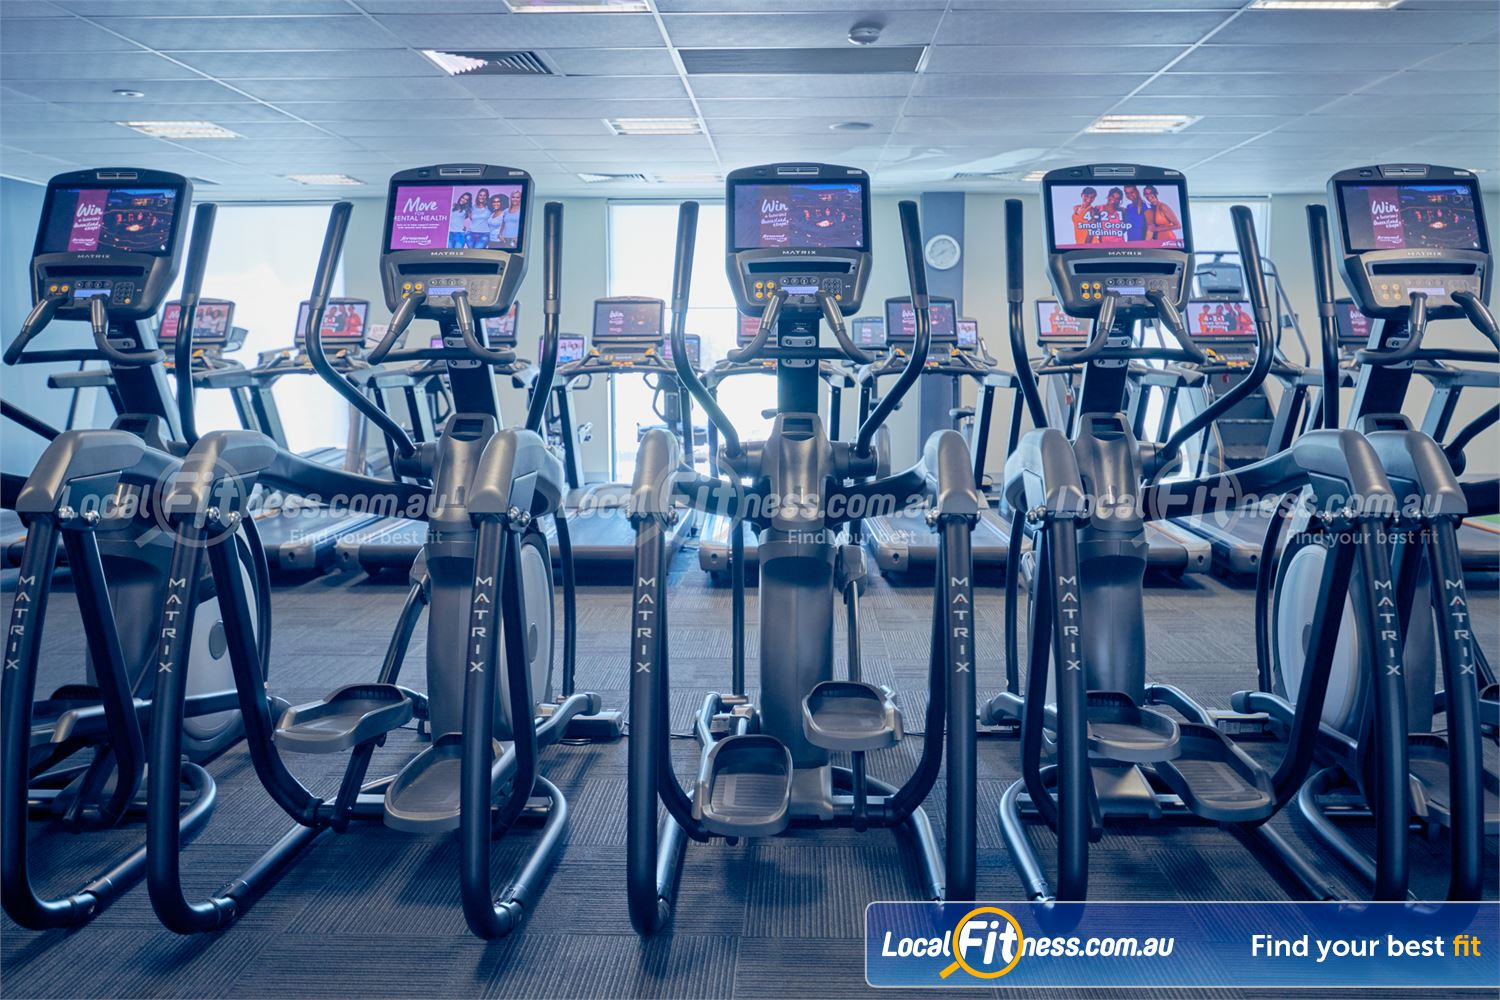 Fernwood Fitness Cairnlea Our Cairnlea women's gym includes state of the art cardio with personal entertainment screens.